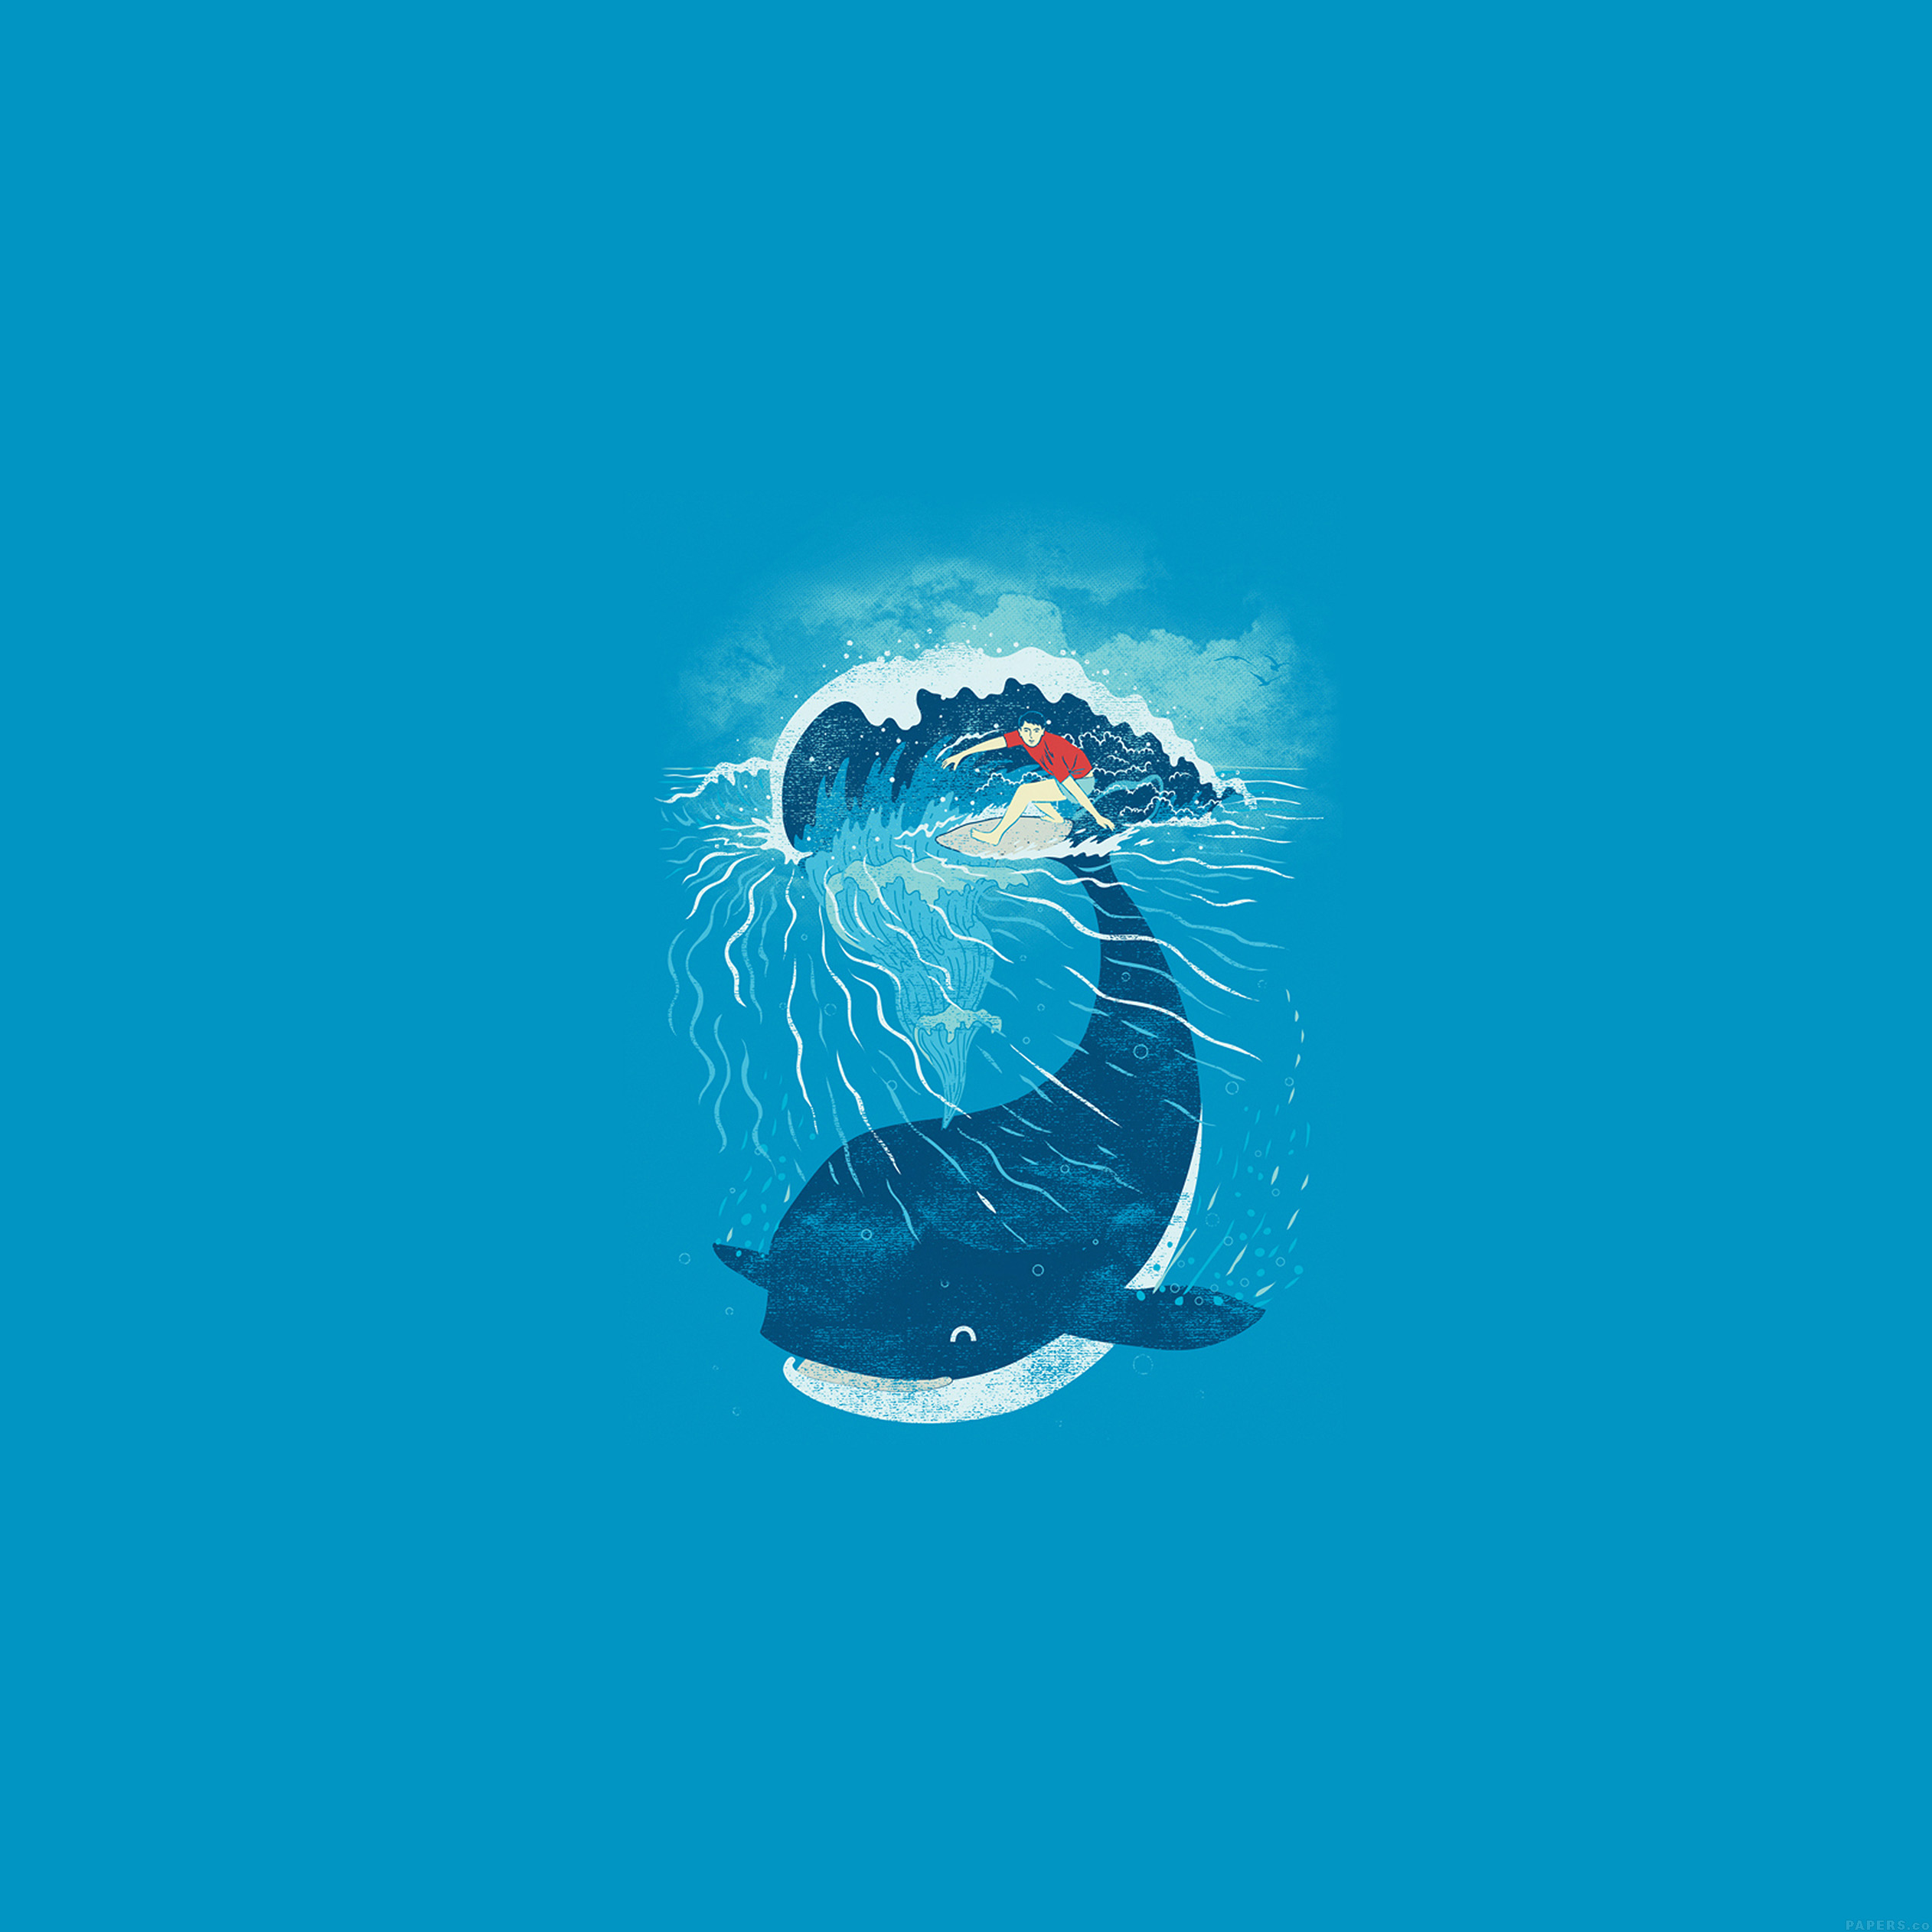 whale-wave-animal-illust-art-sea-9-wallpaper